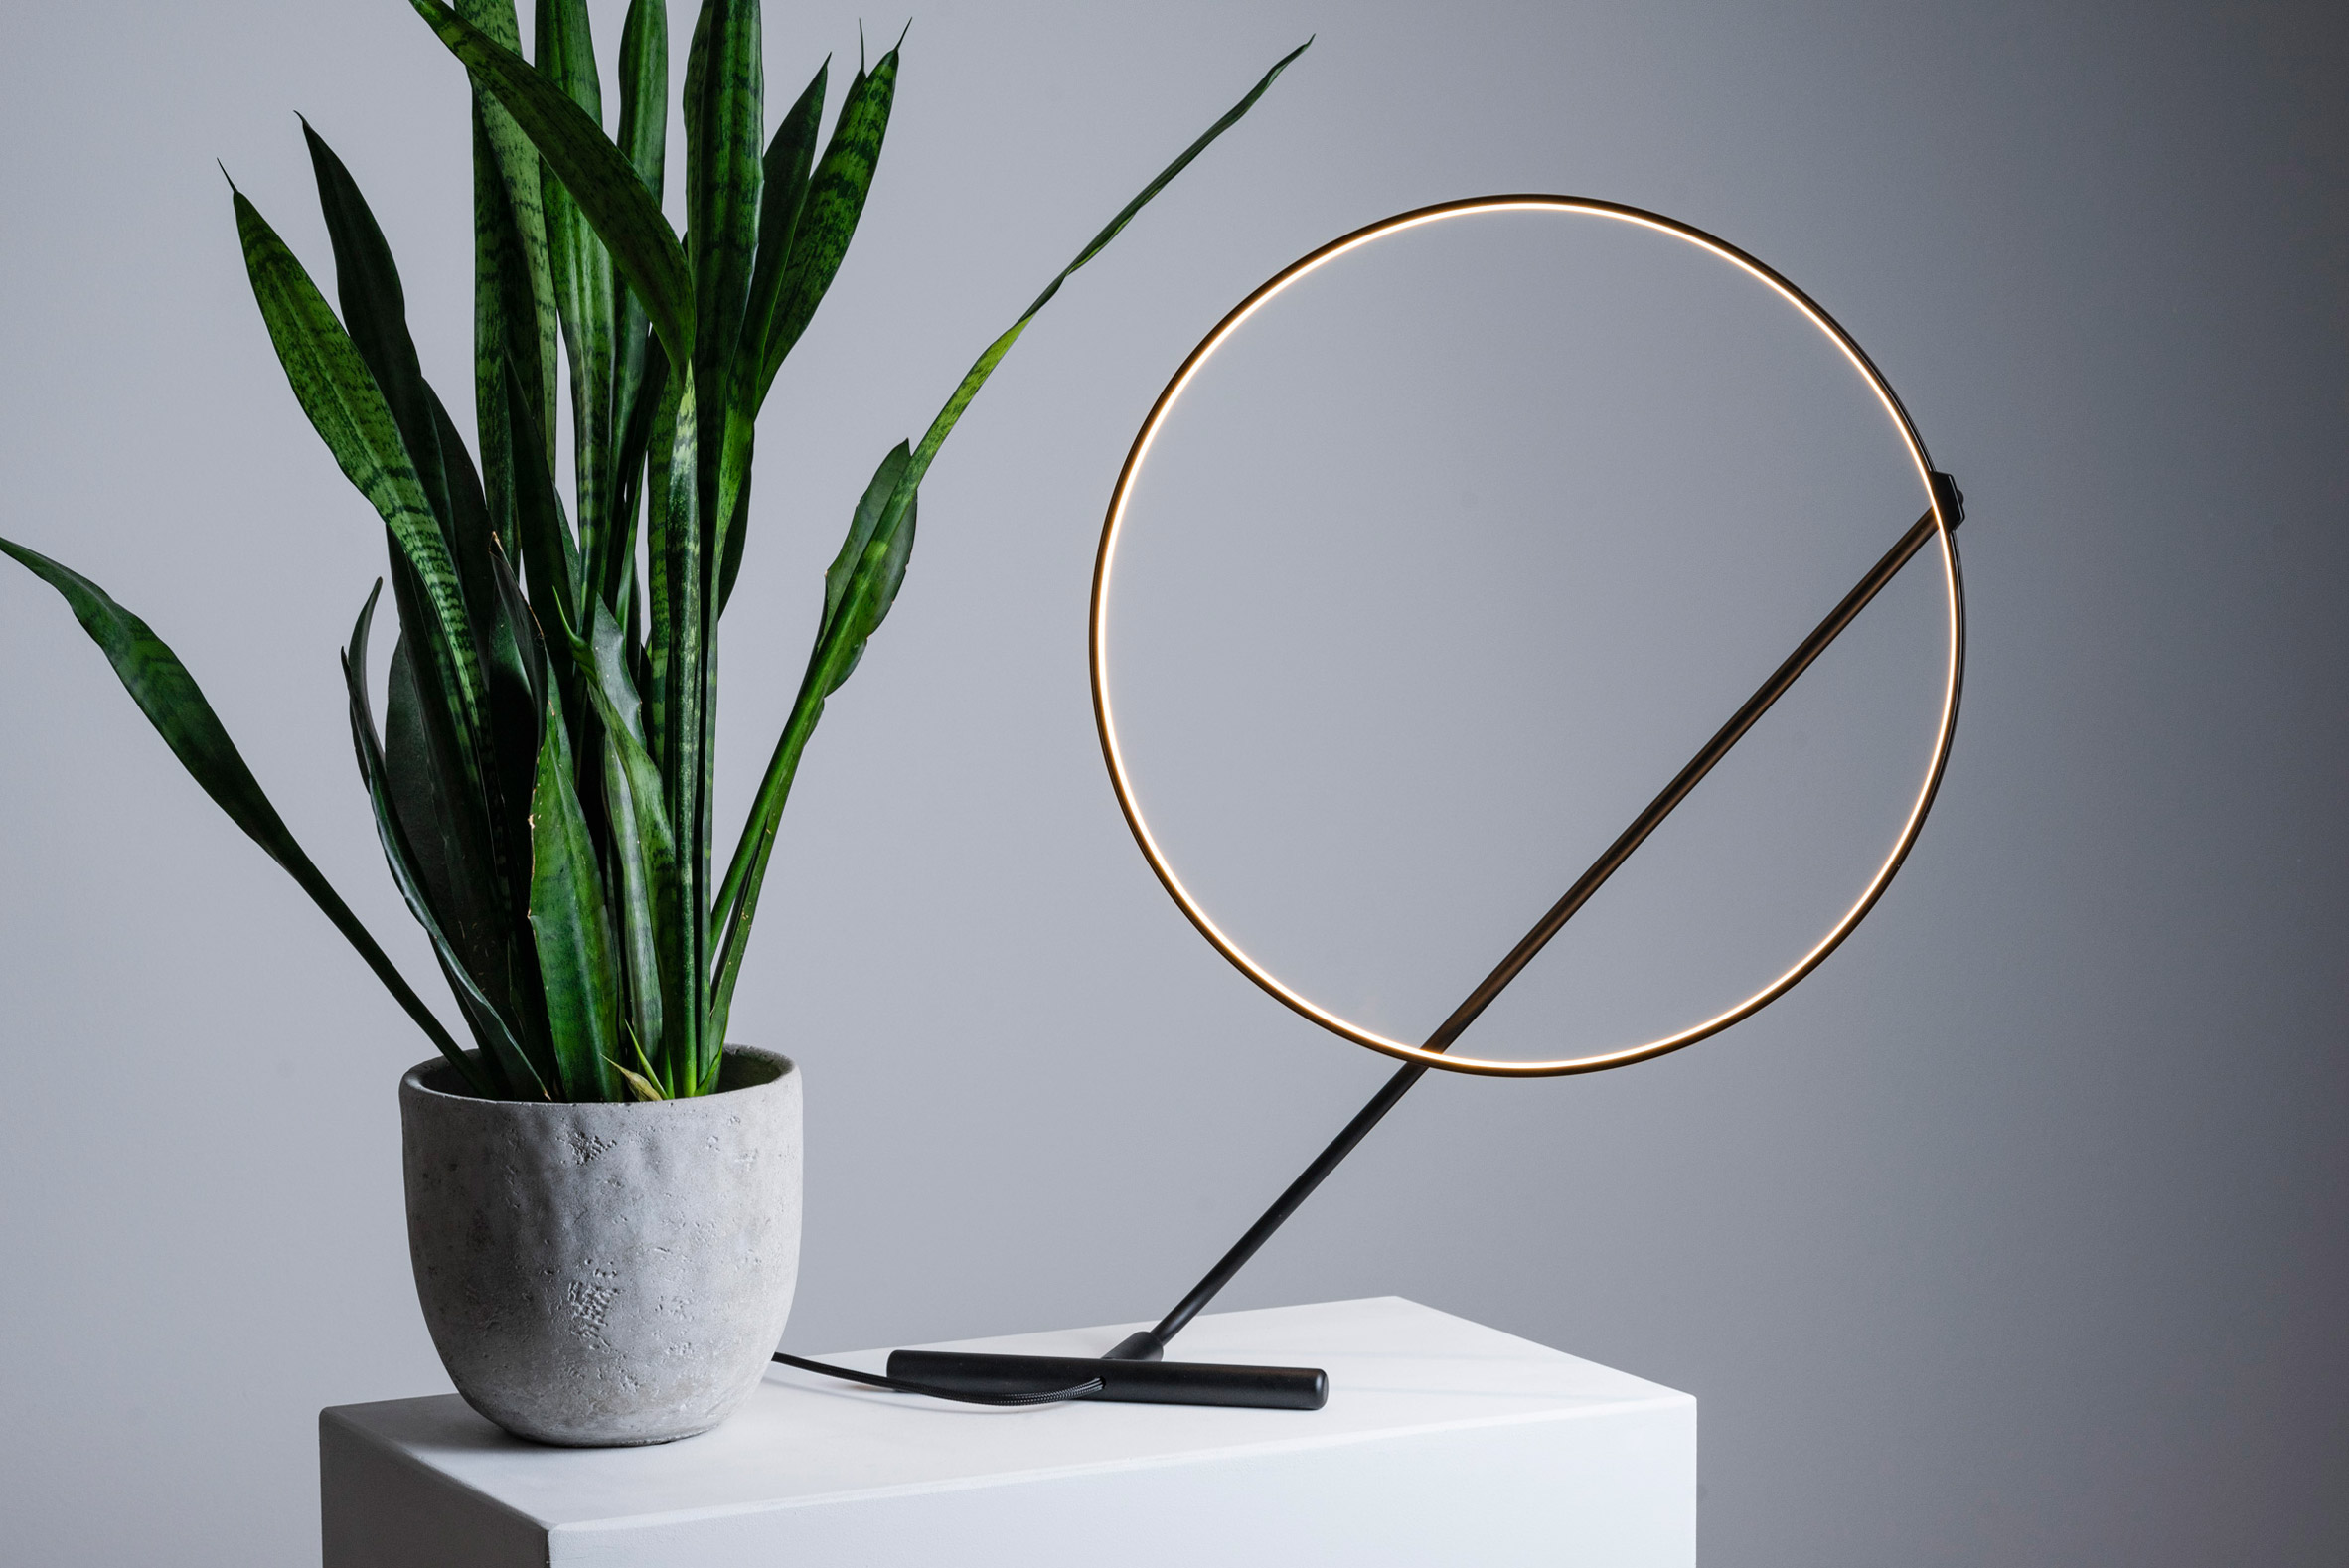 Poise lamp can be adjusted by hand